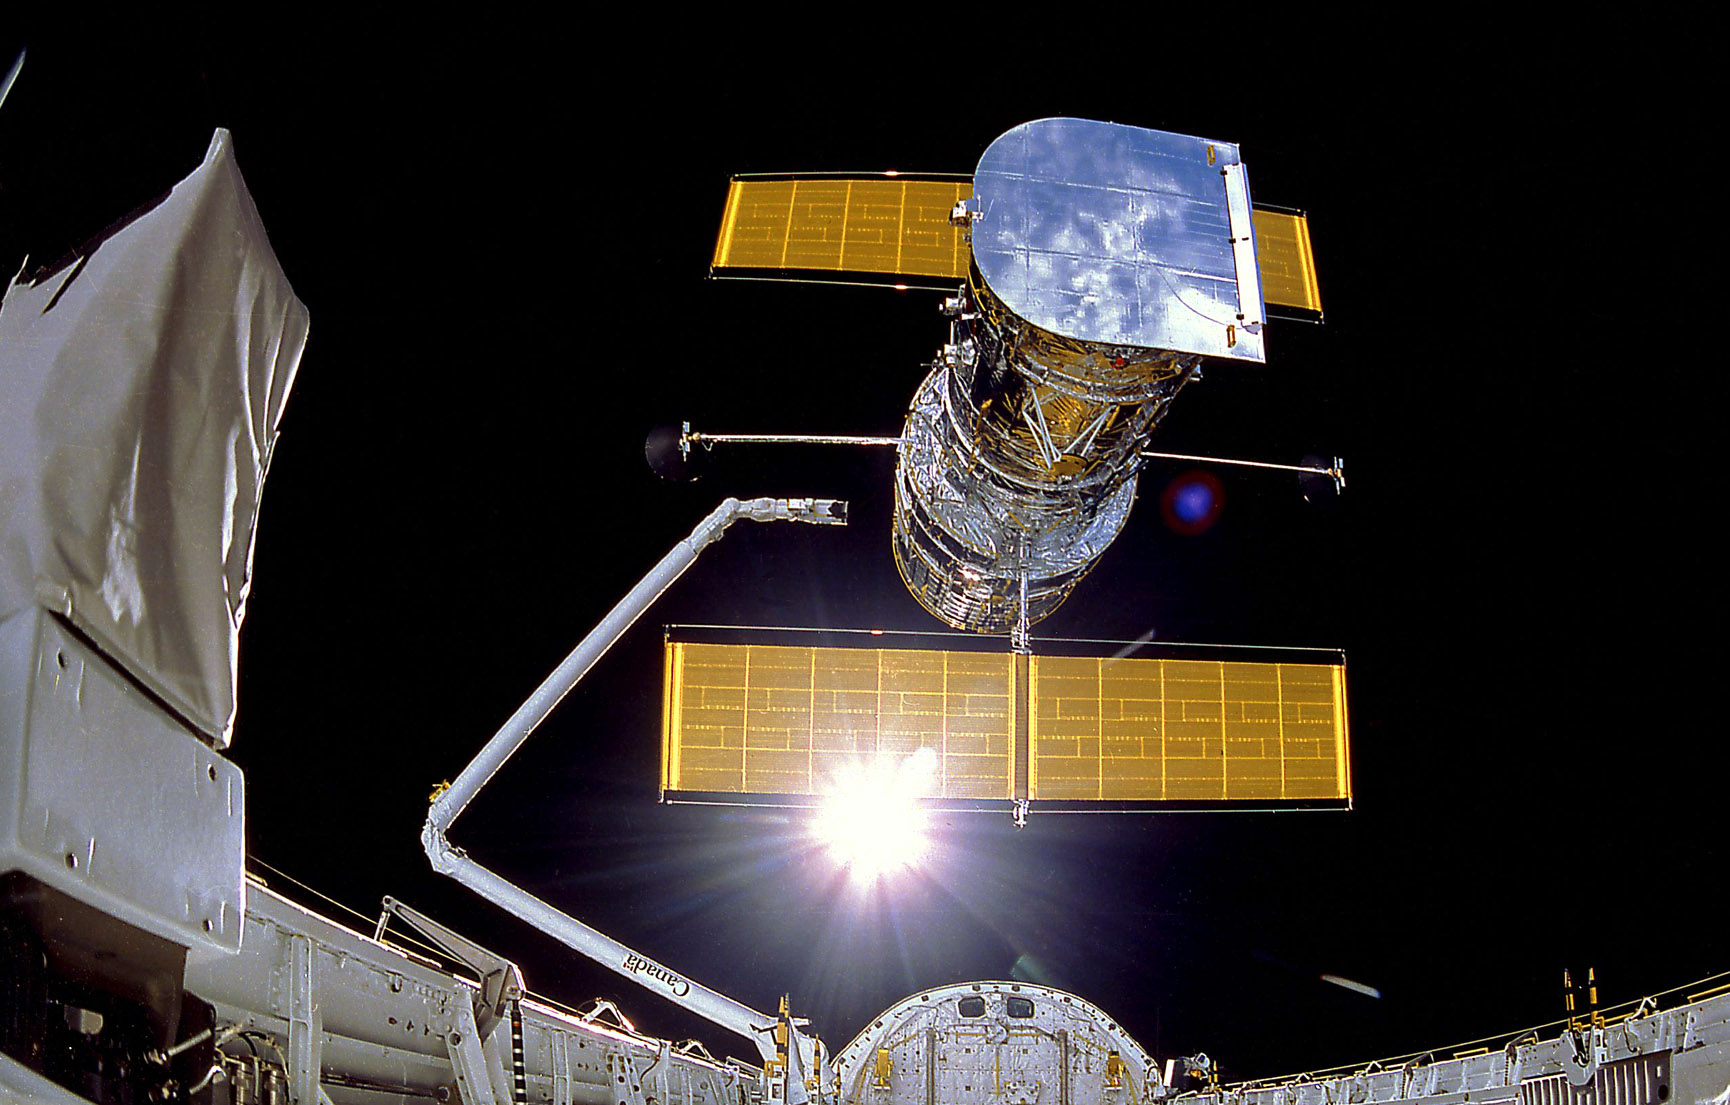 Hubble Telescope being deployed by Discovery